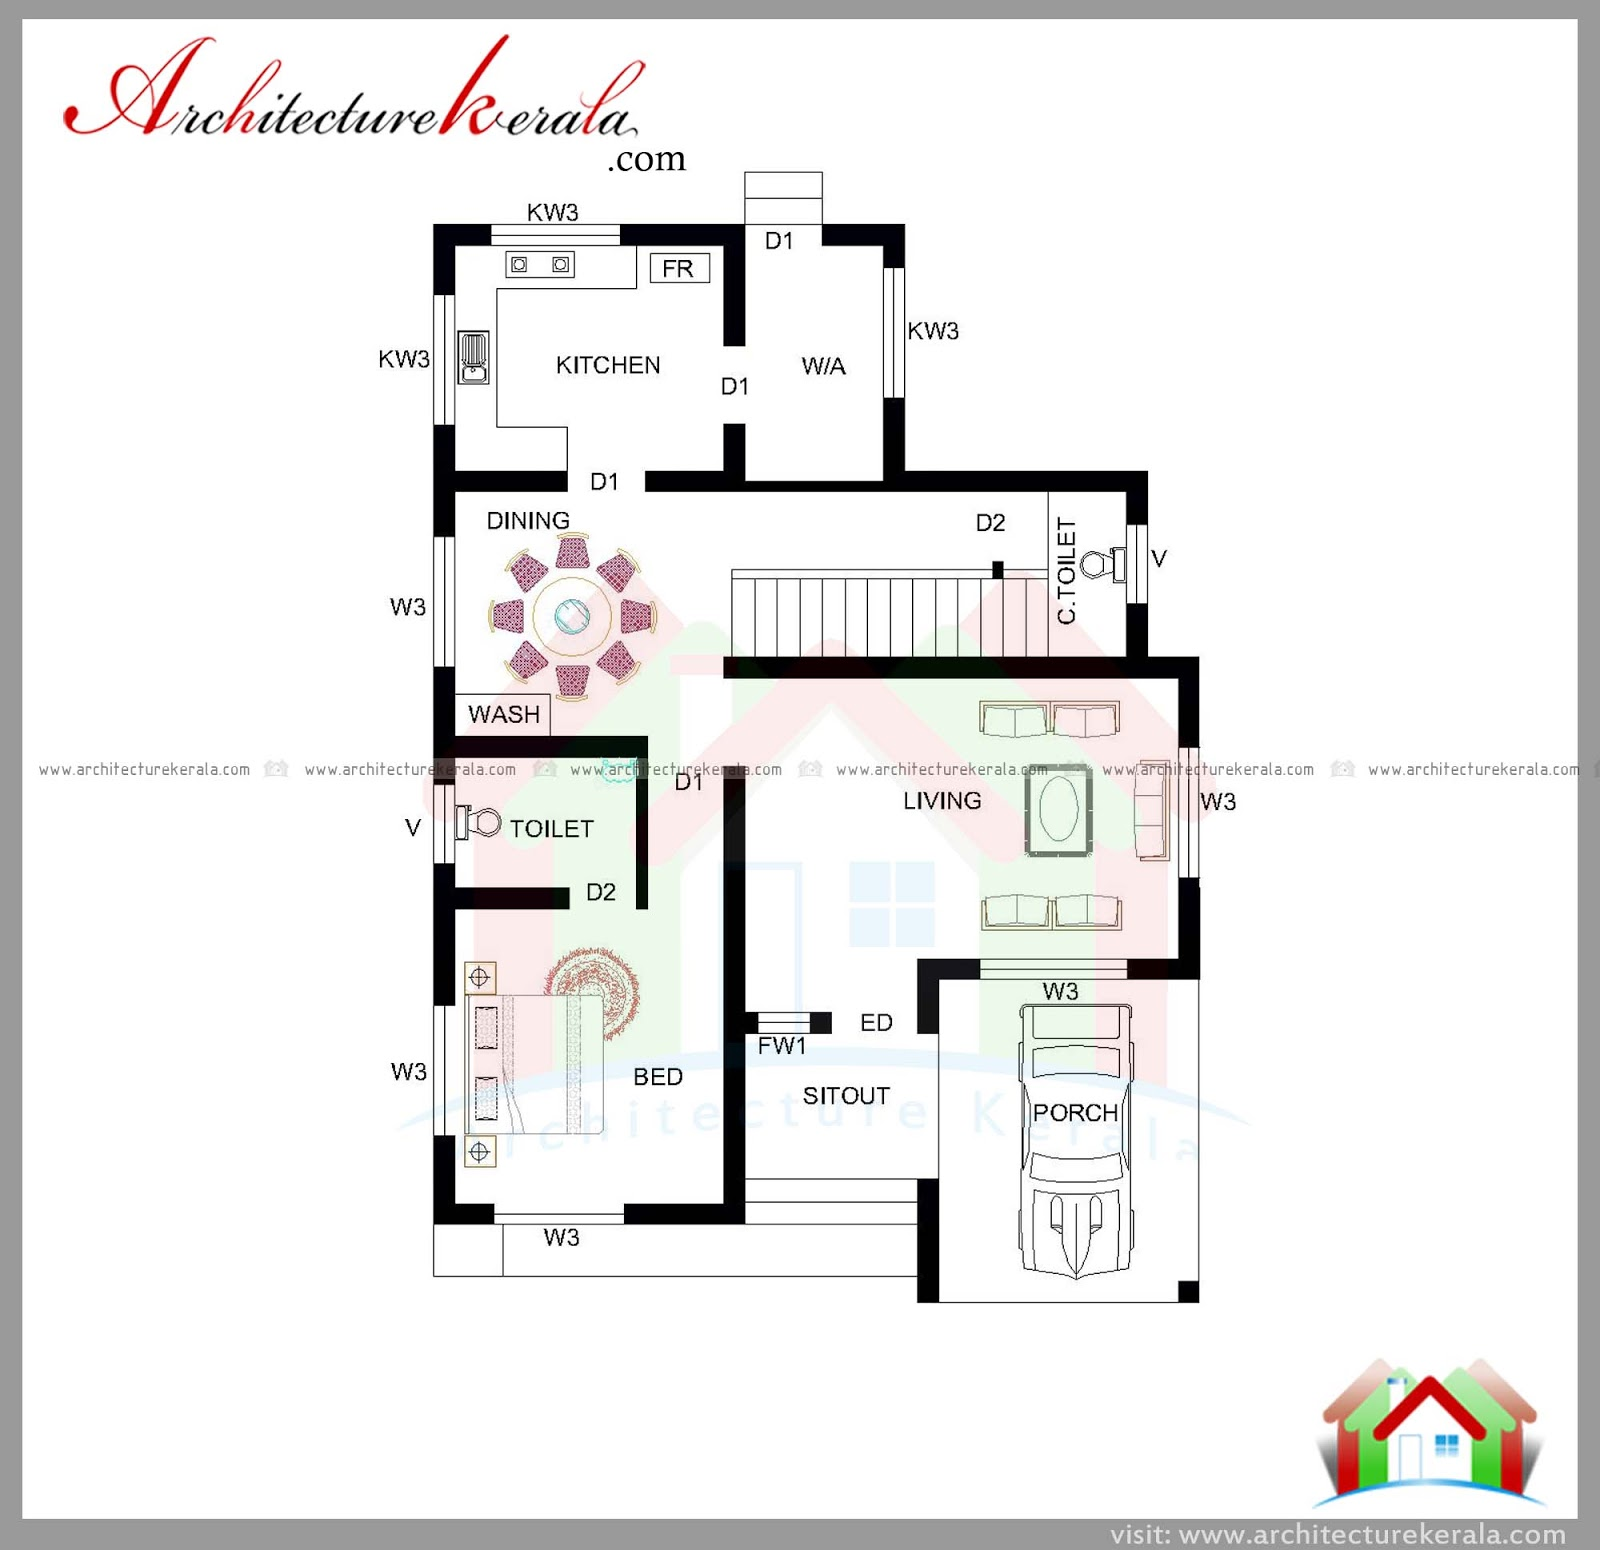 Kerala Home Design February 2016: 1800 SQUARE FEET HOUSE PLAN AND ELEVATION